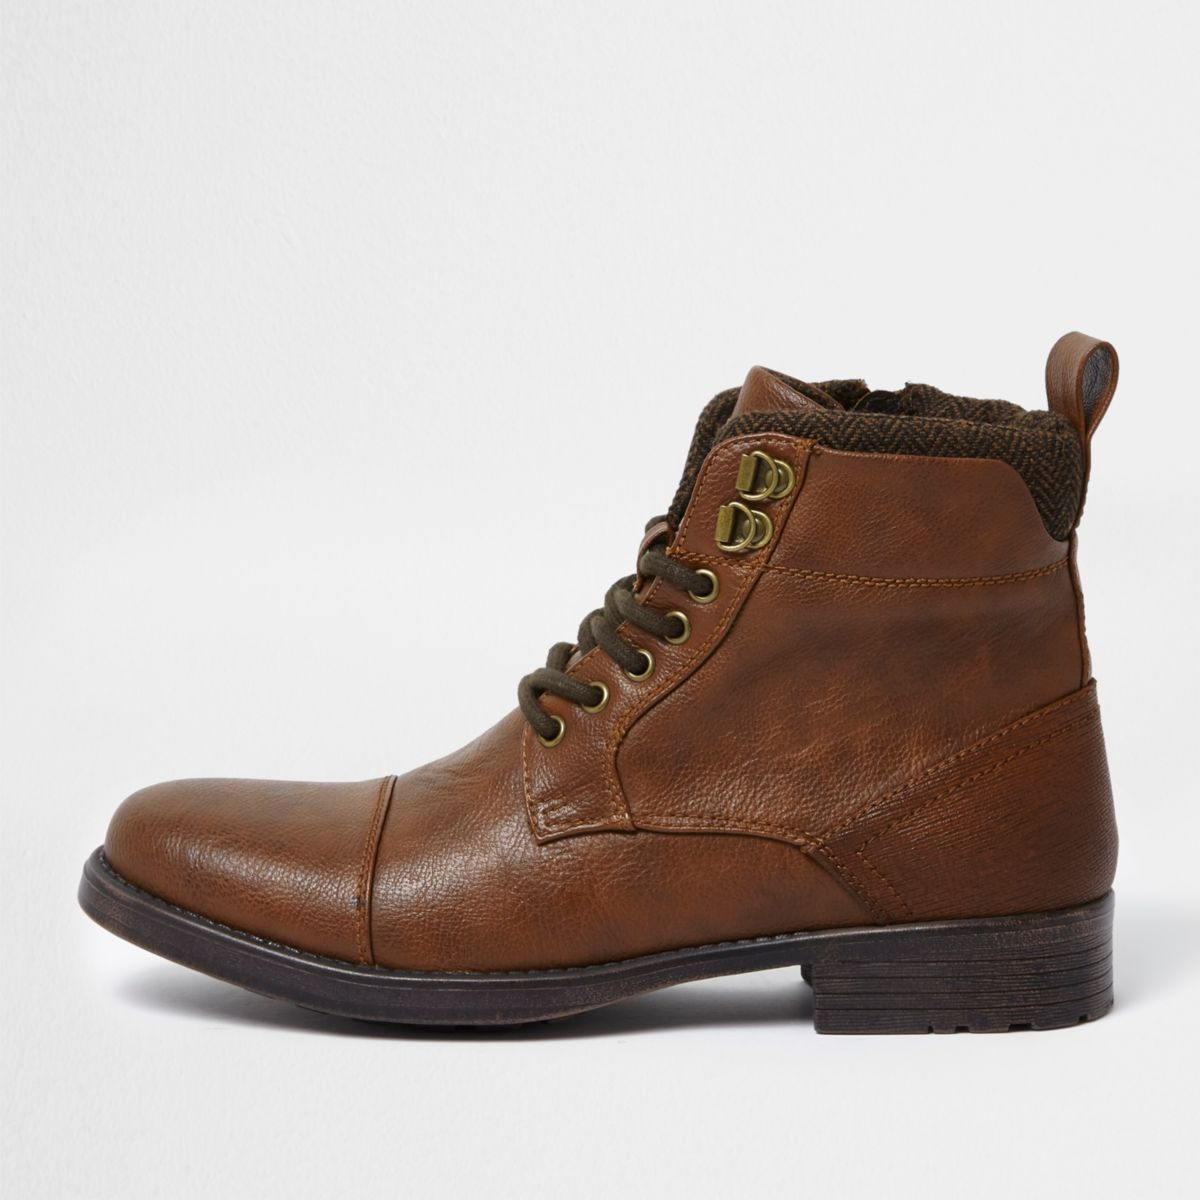 Brown lace-up toe cap boots